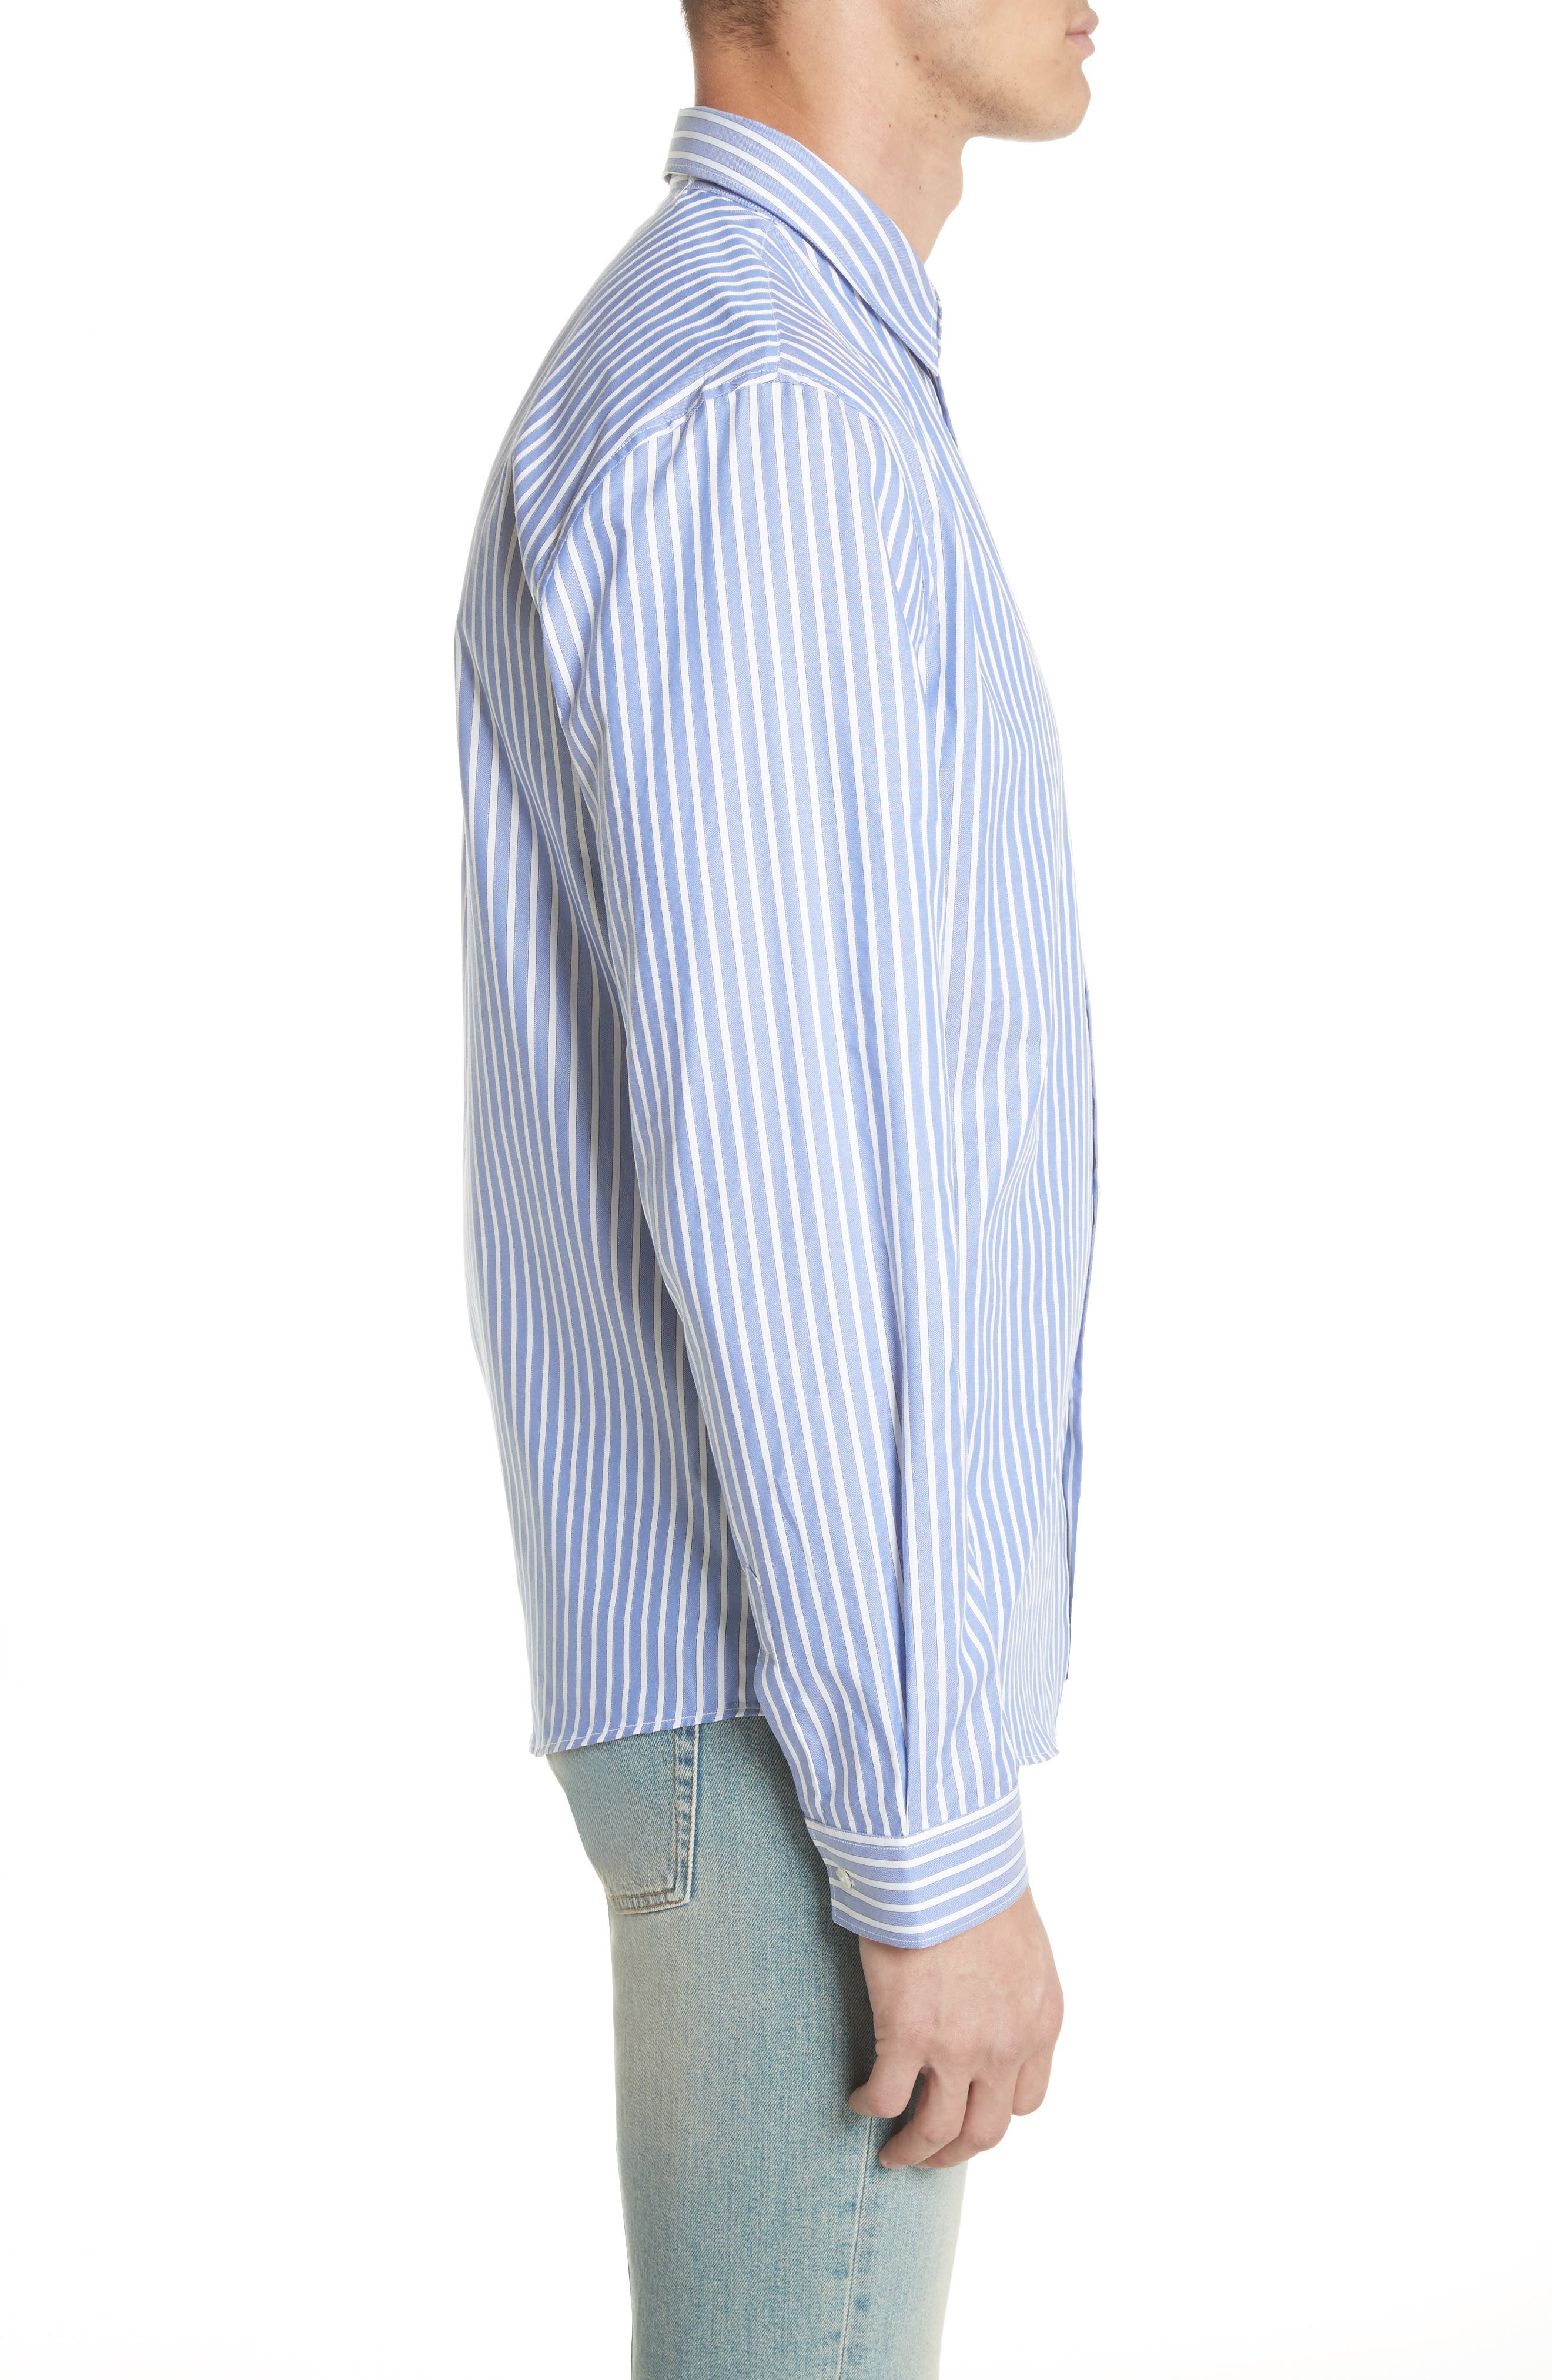 Bee Embroidered Stripe Dress Shirt,                             Alternate thumbnail 4, color,                             4869 Blue